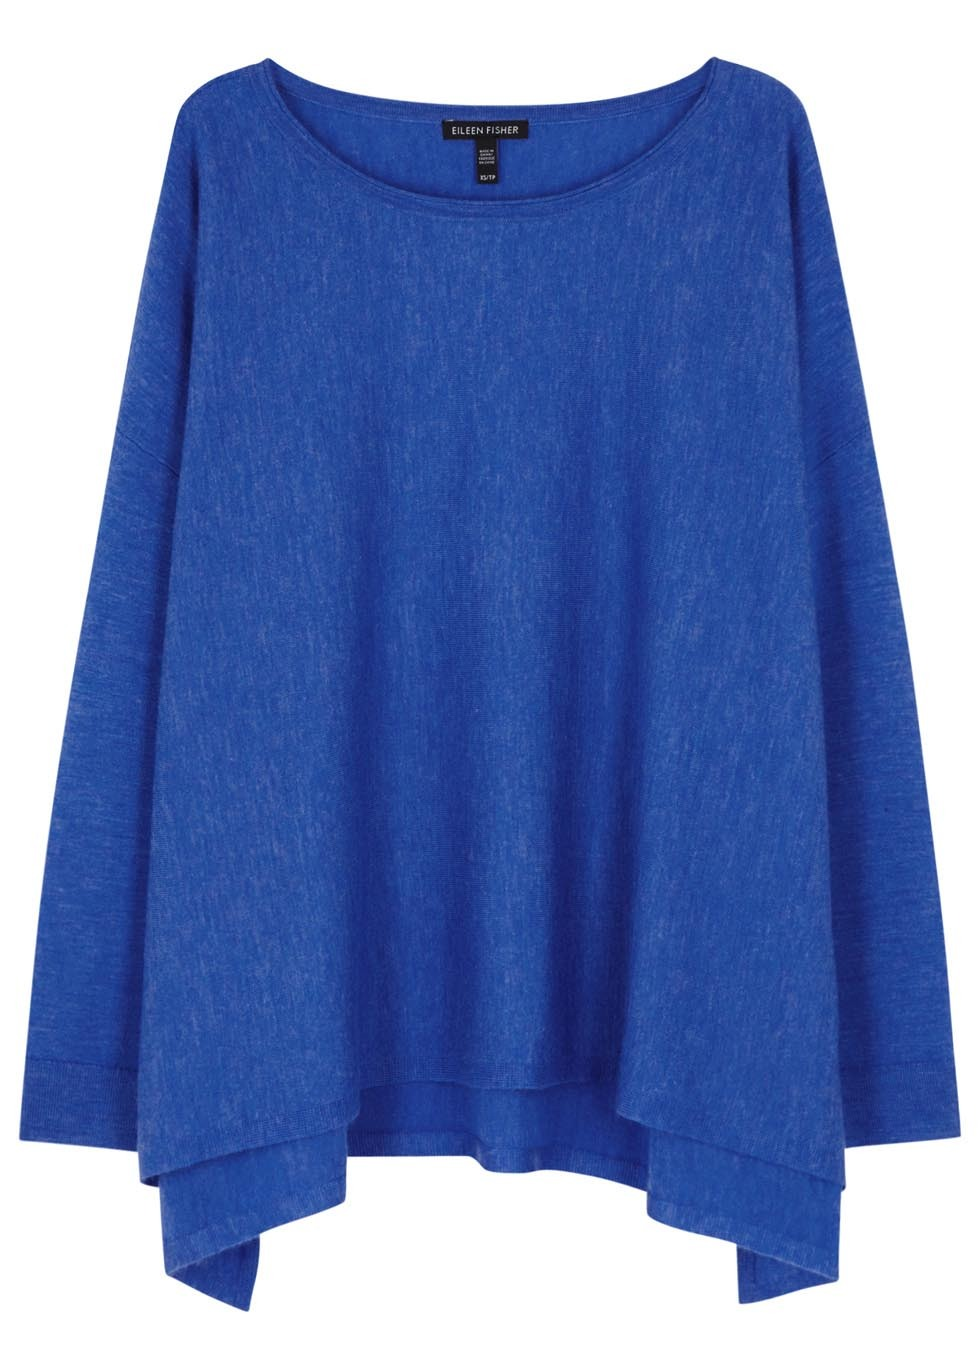 Blue Draped Cashmere Jumper - neckline: round neck; pattern: plain; style: standard; predominant colour: royal blue; occasions: casual; length: standard; fit: loose; fibres: cashmere - 100%; sleeve length: long sleeve; sleeve style: standard; texture group: knits/crochet; pattern type: fabric; season: s/s 2016